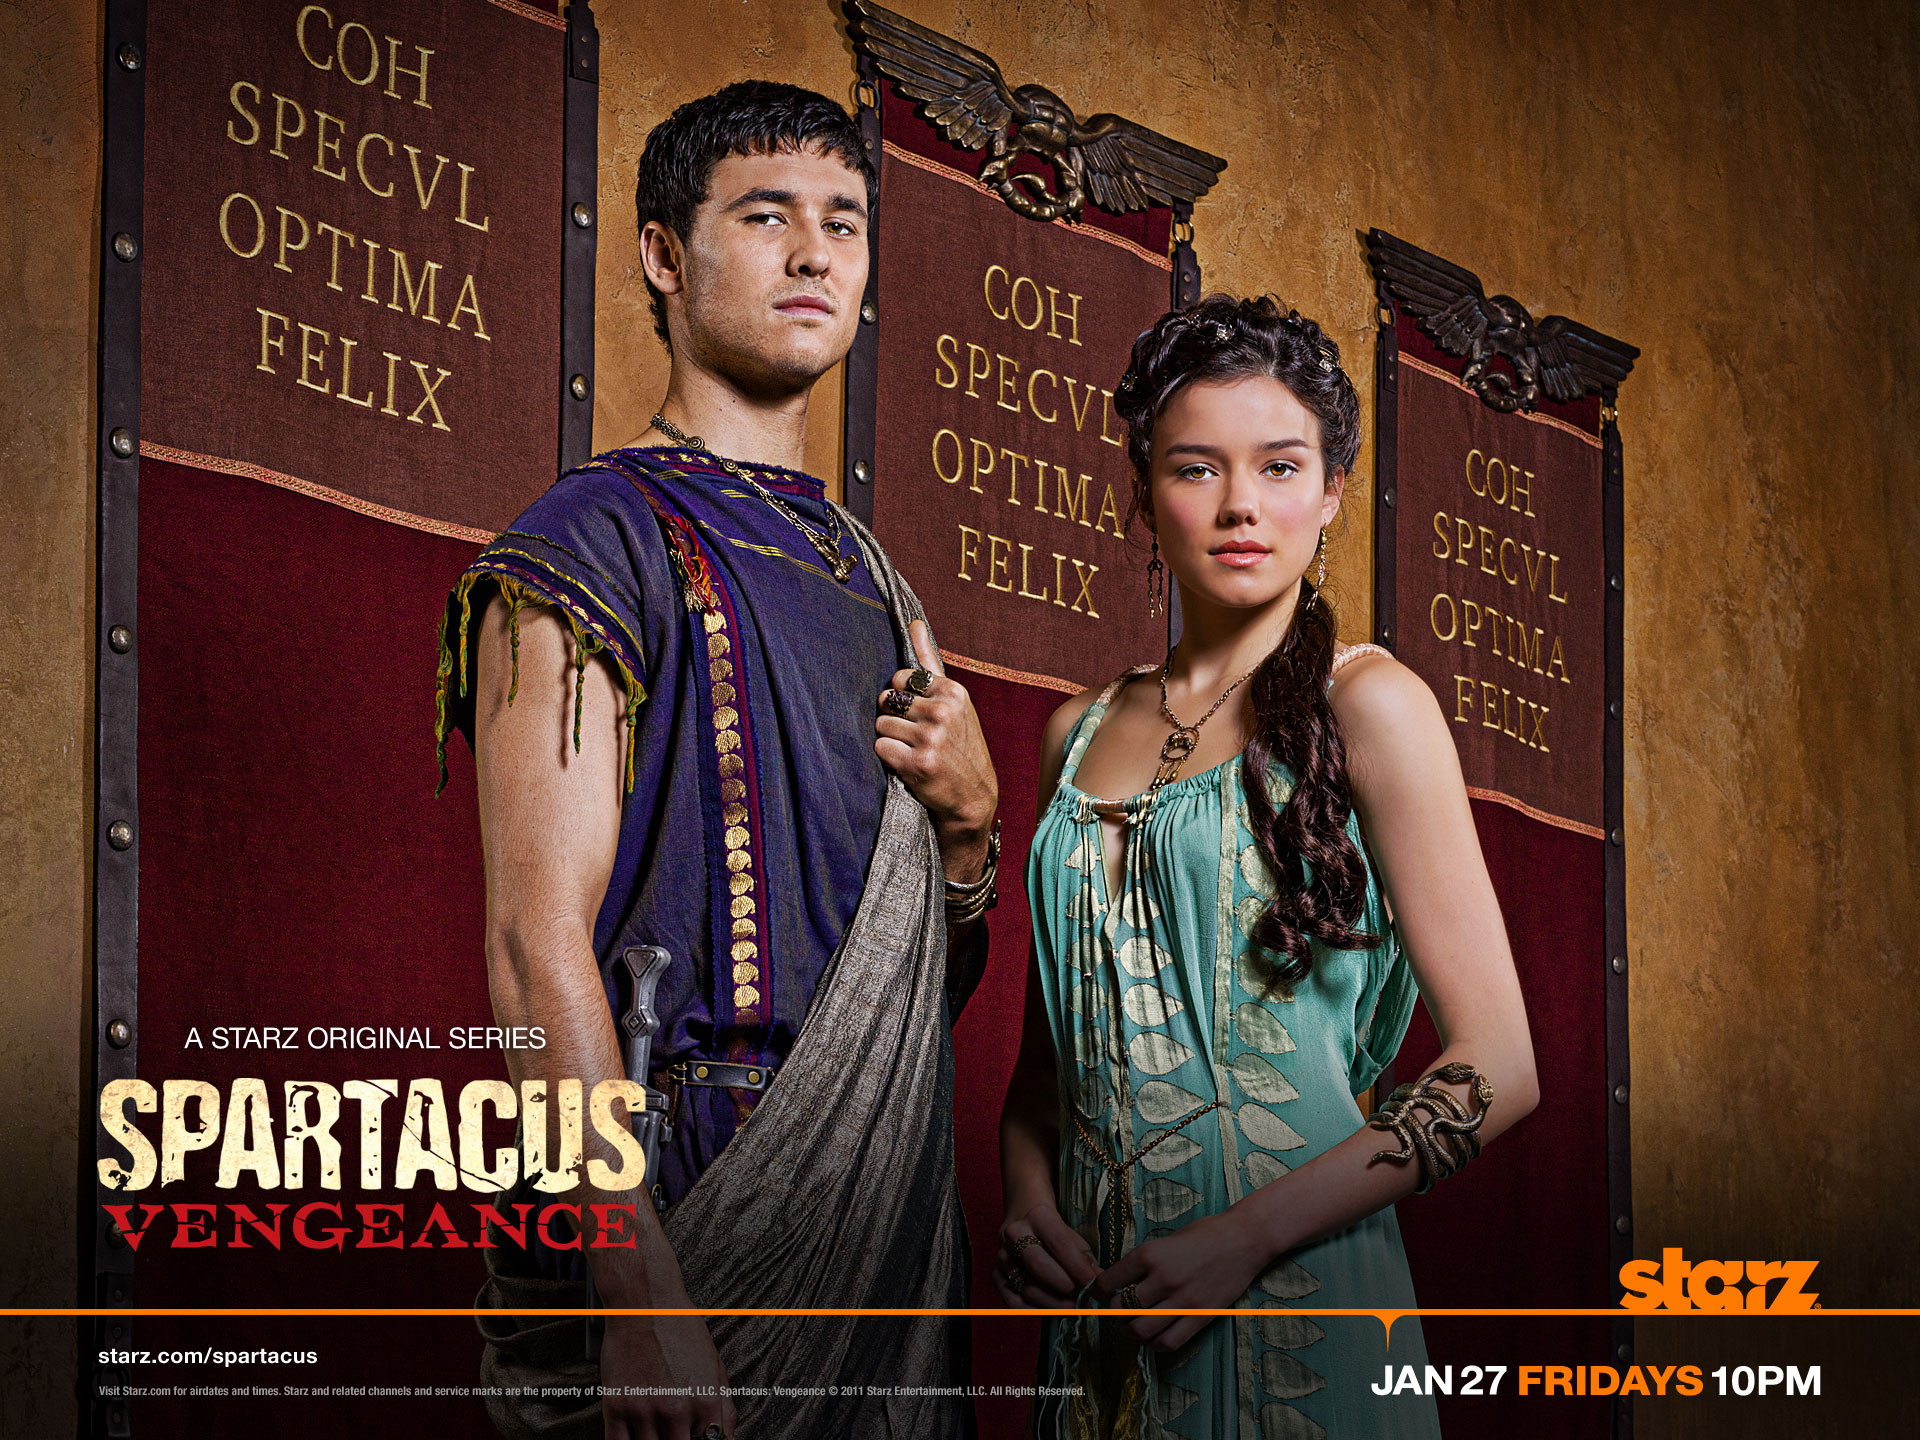 Spartacus-Vengeance-spartacus-blood-and-sand-28637015-1920-1440.jpg